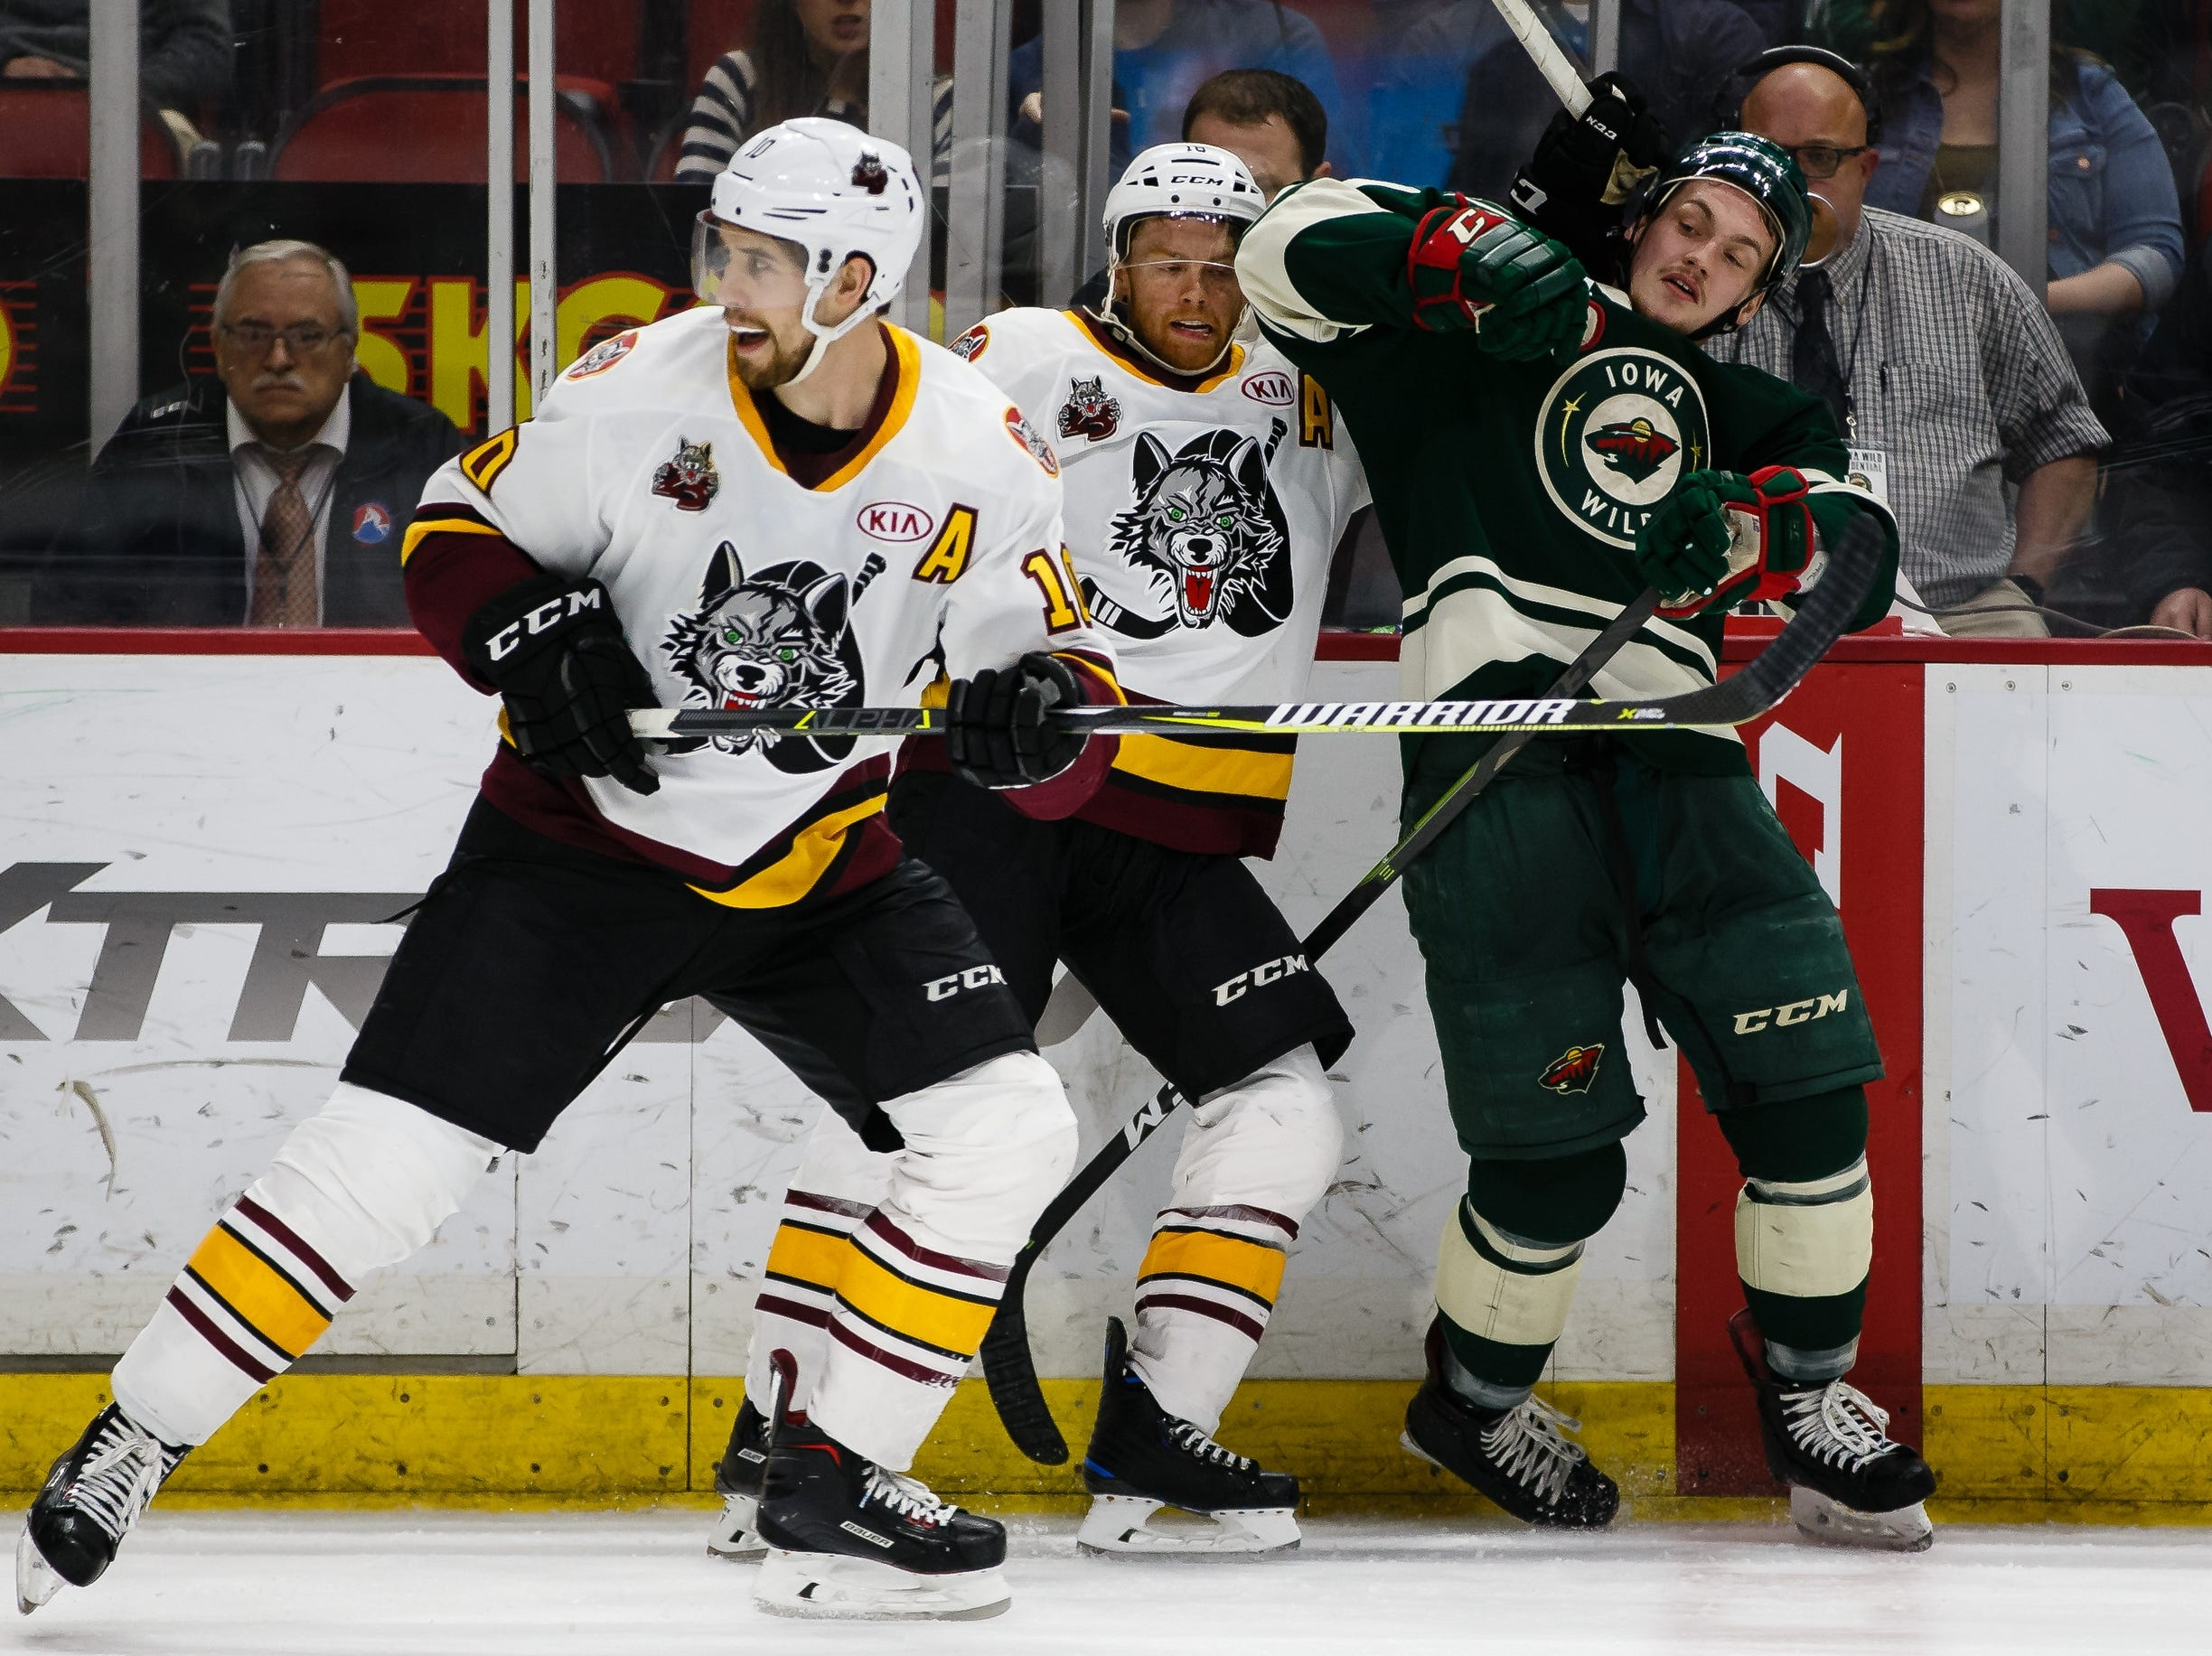 The Iowa Wild's Brennan Menell gets tangled up with the Chicago Wolves' T.J. Tynan during the second period of their Calder Cup playoff hockey game on Friday, May 10, 2019, in Des Moines.